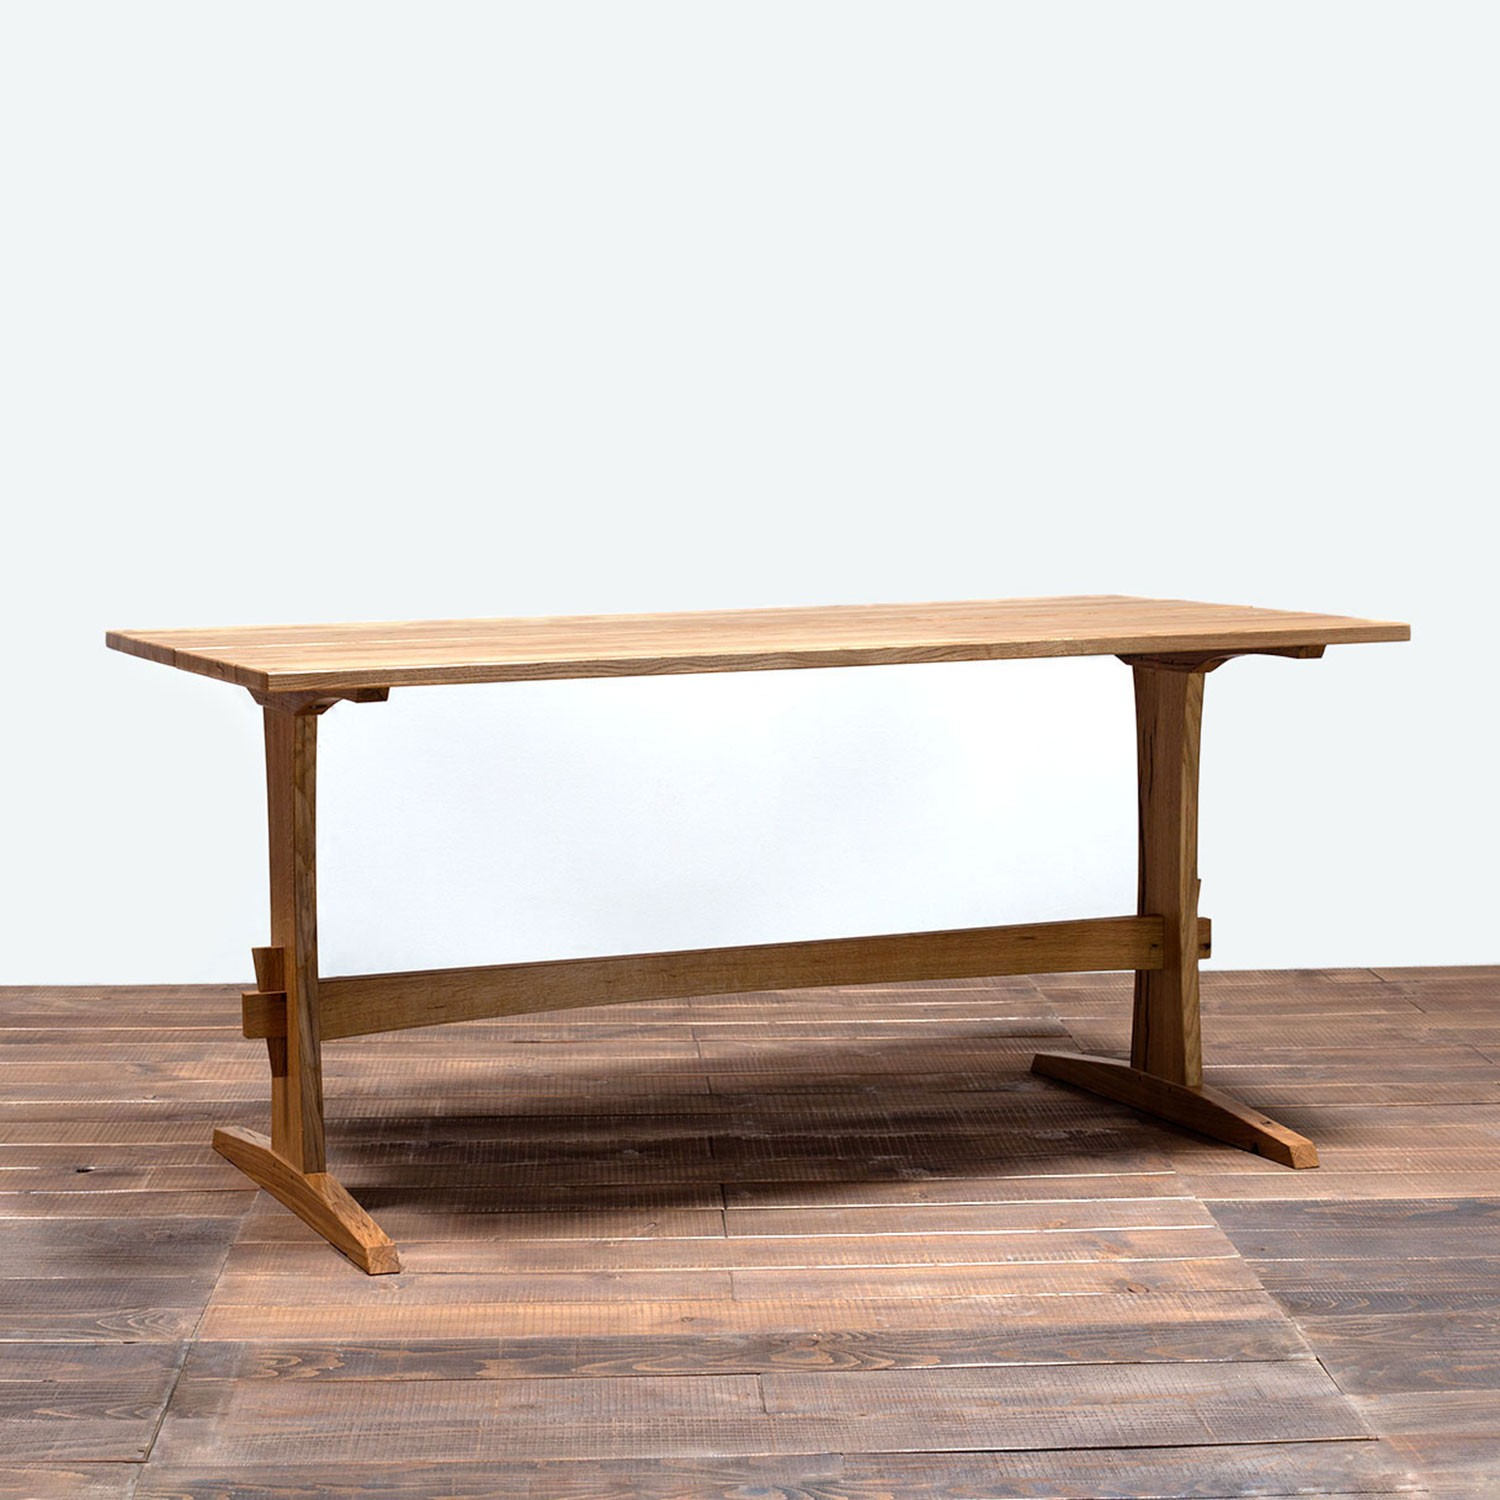 Oak trestle table by Design Mob